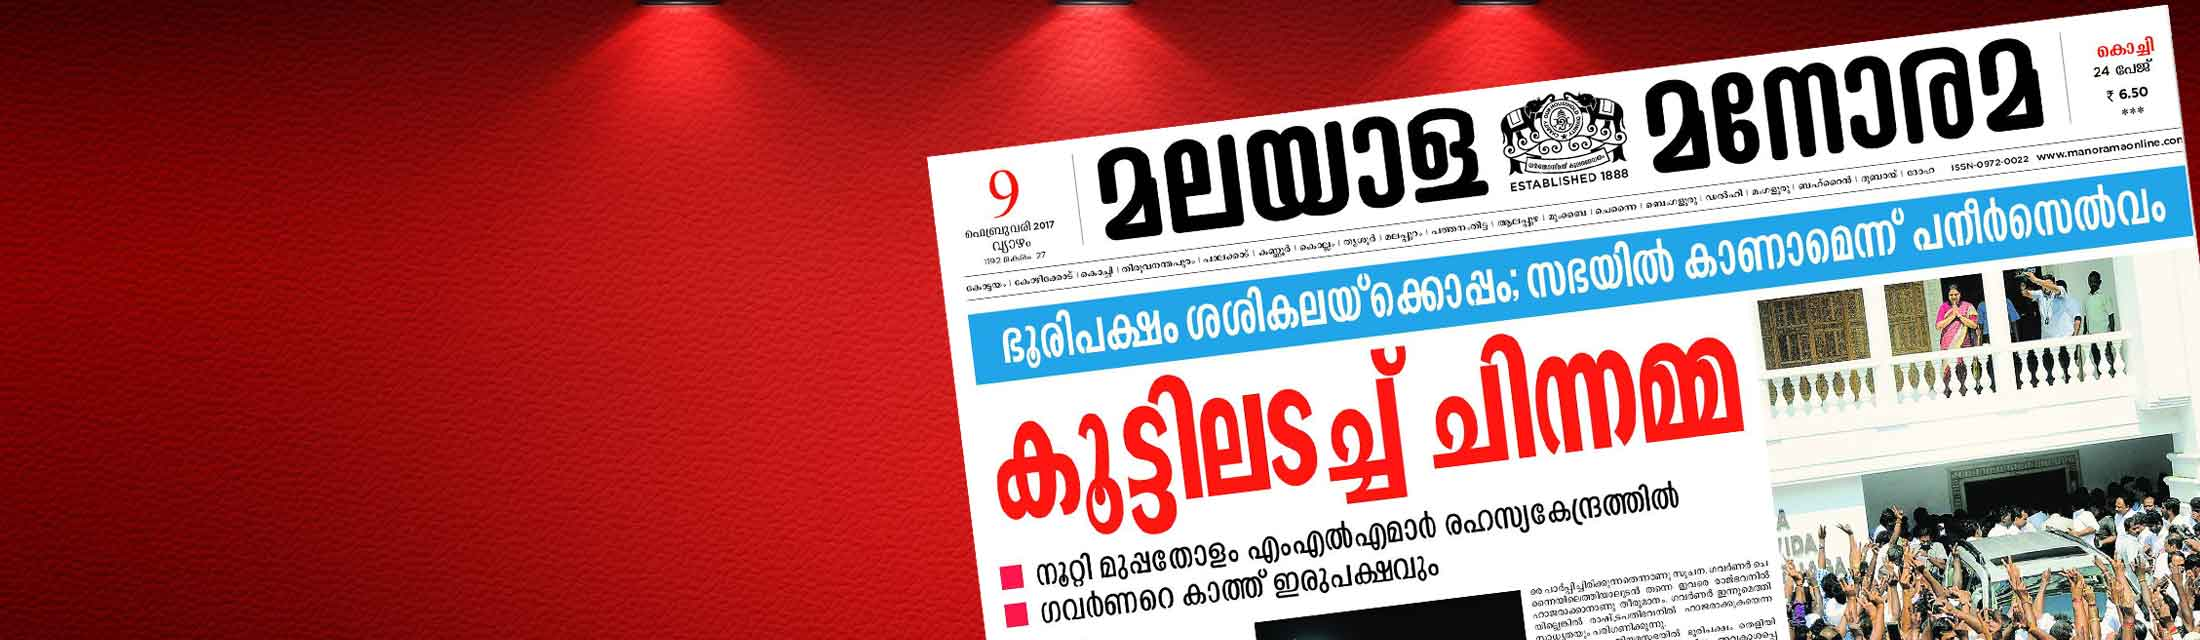 Malayala Manorma Newspaper Ads